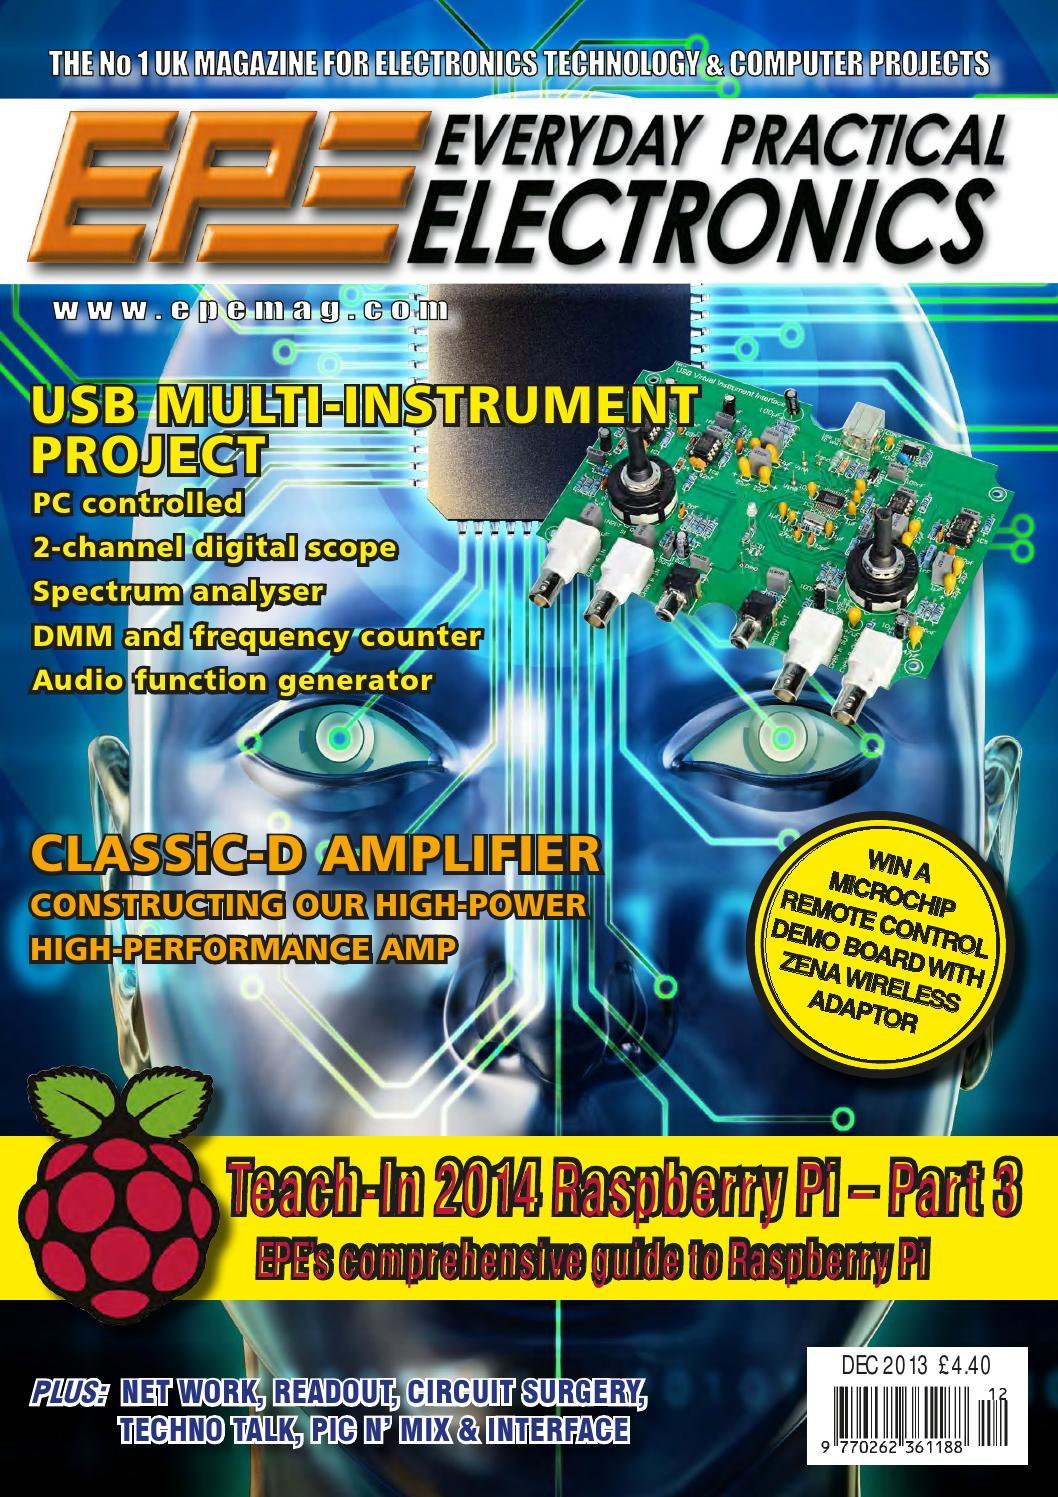 Everyday Practical Electronics 2013 12 By Yurgen Issuu Electronic Circuit Design Magazine